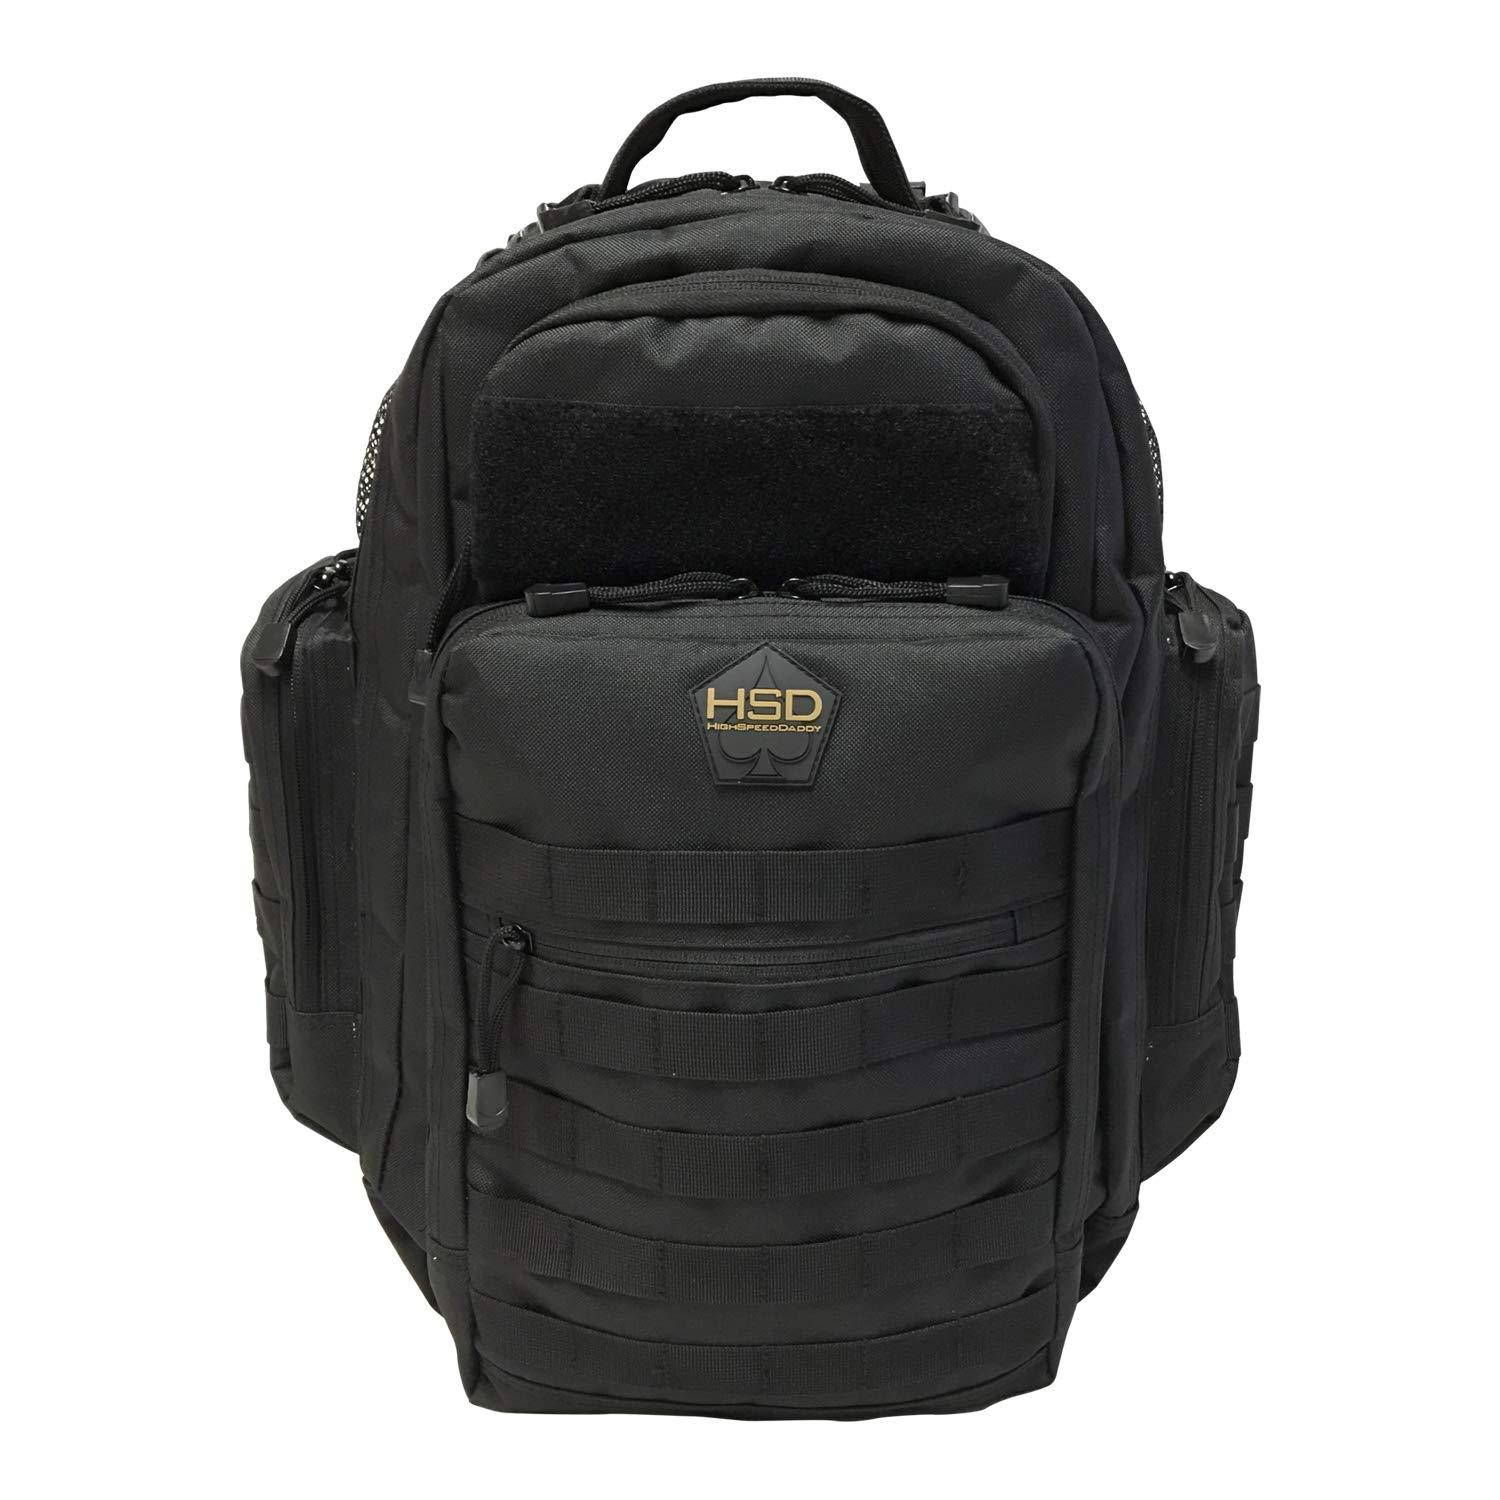 HSD Diaper Bag Backpack for Dad and mom